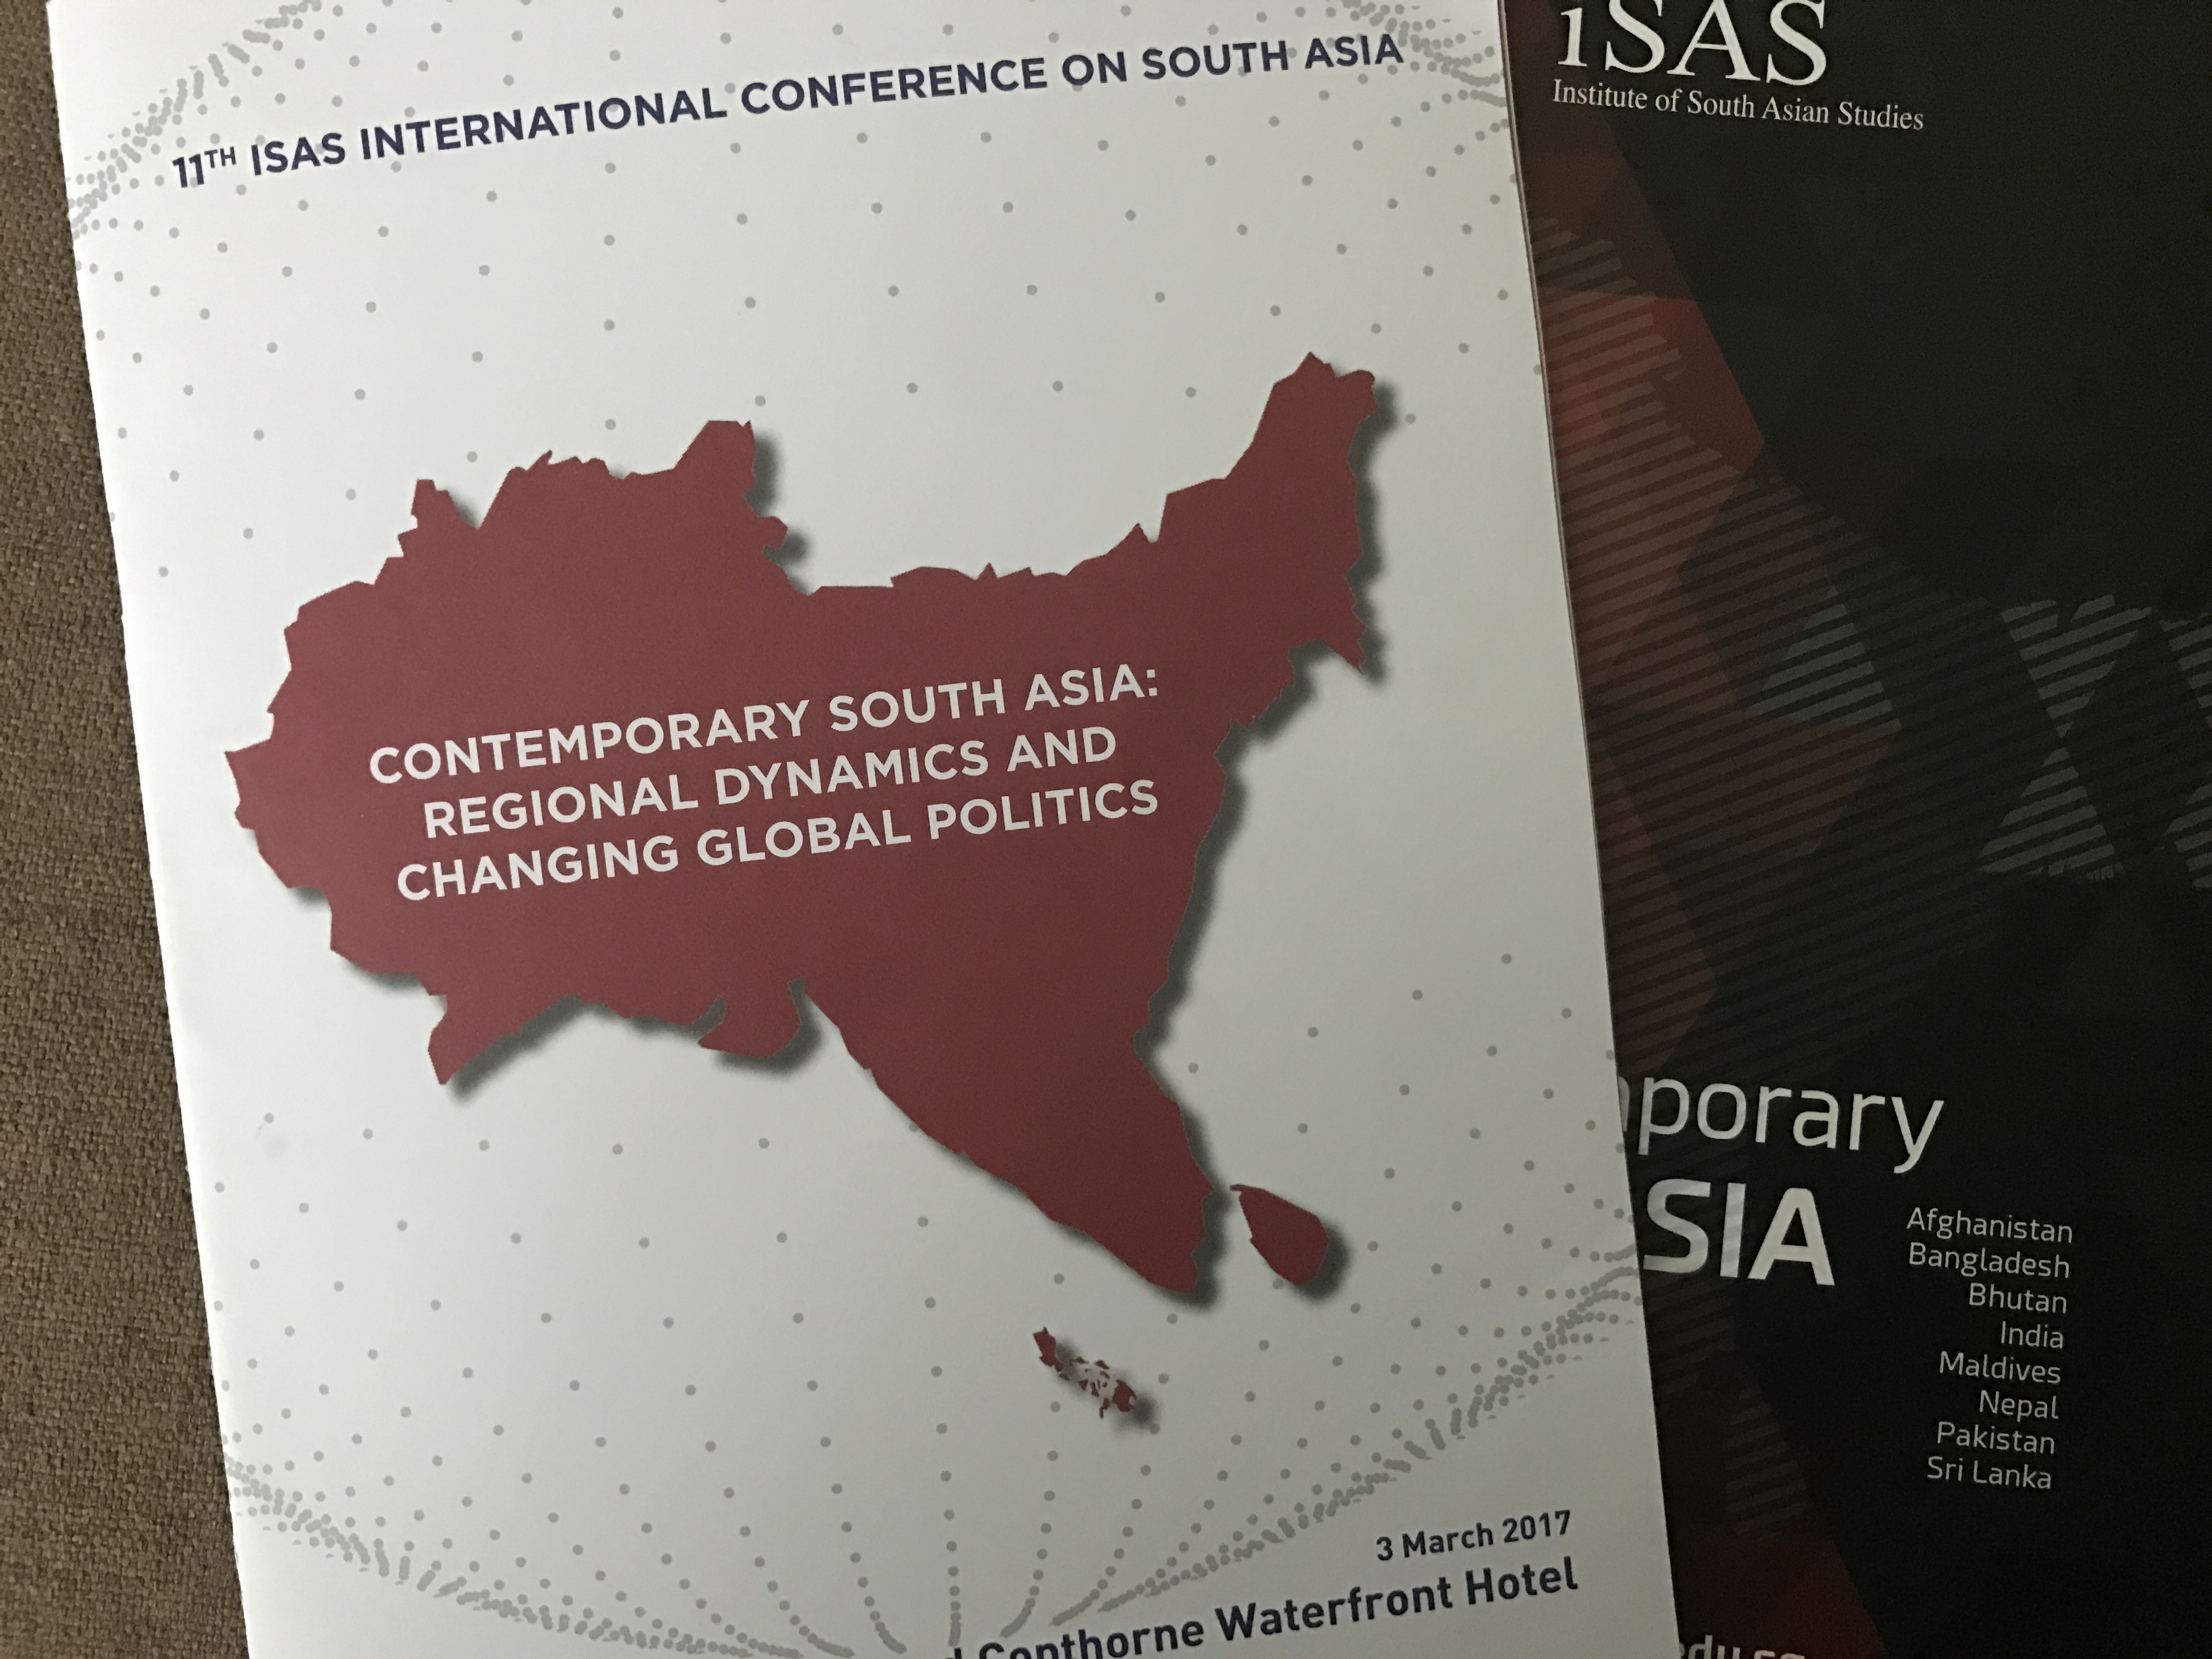 NUS, ISAS, International Conference, Institute of South Asian Studies, National University of Singapore, connectedtoindia